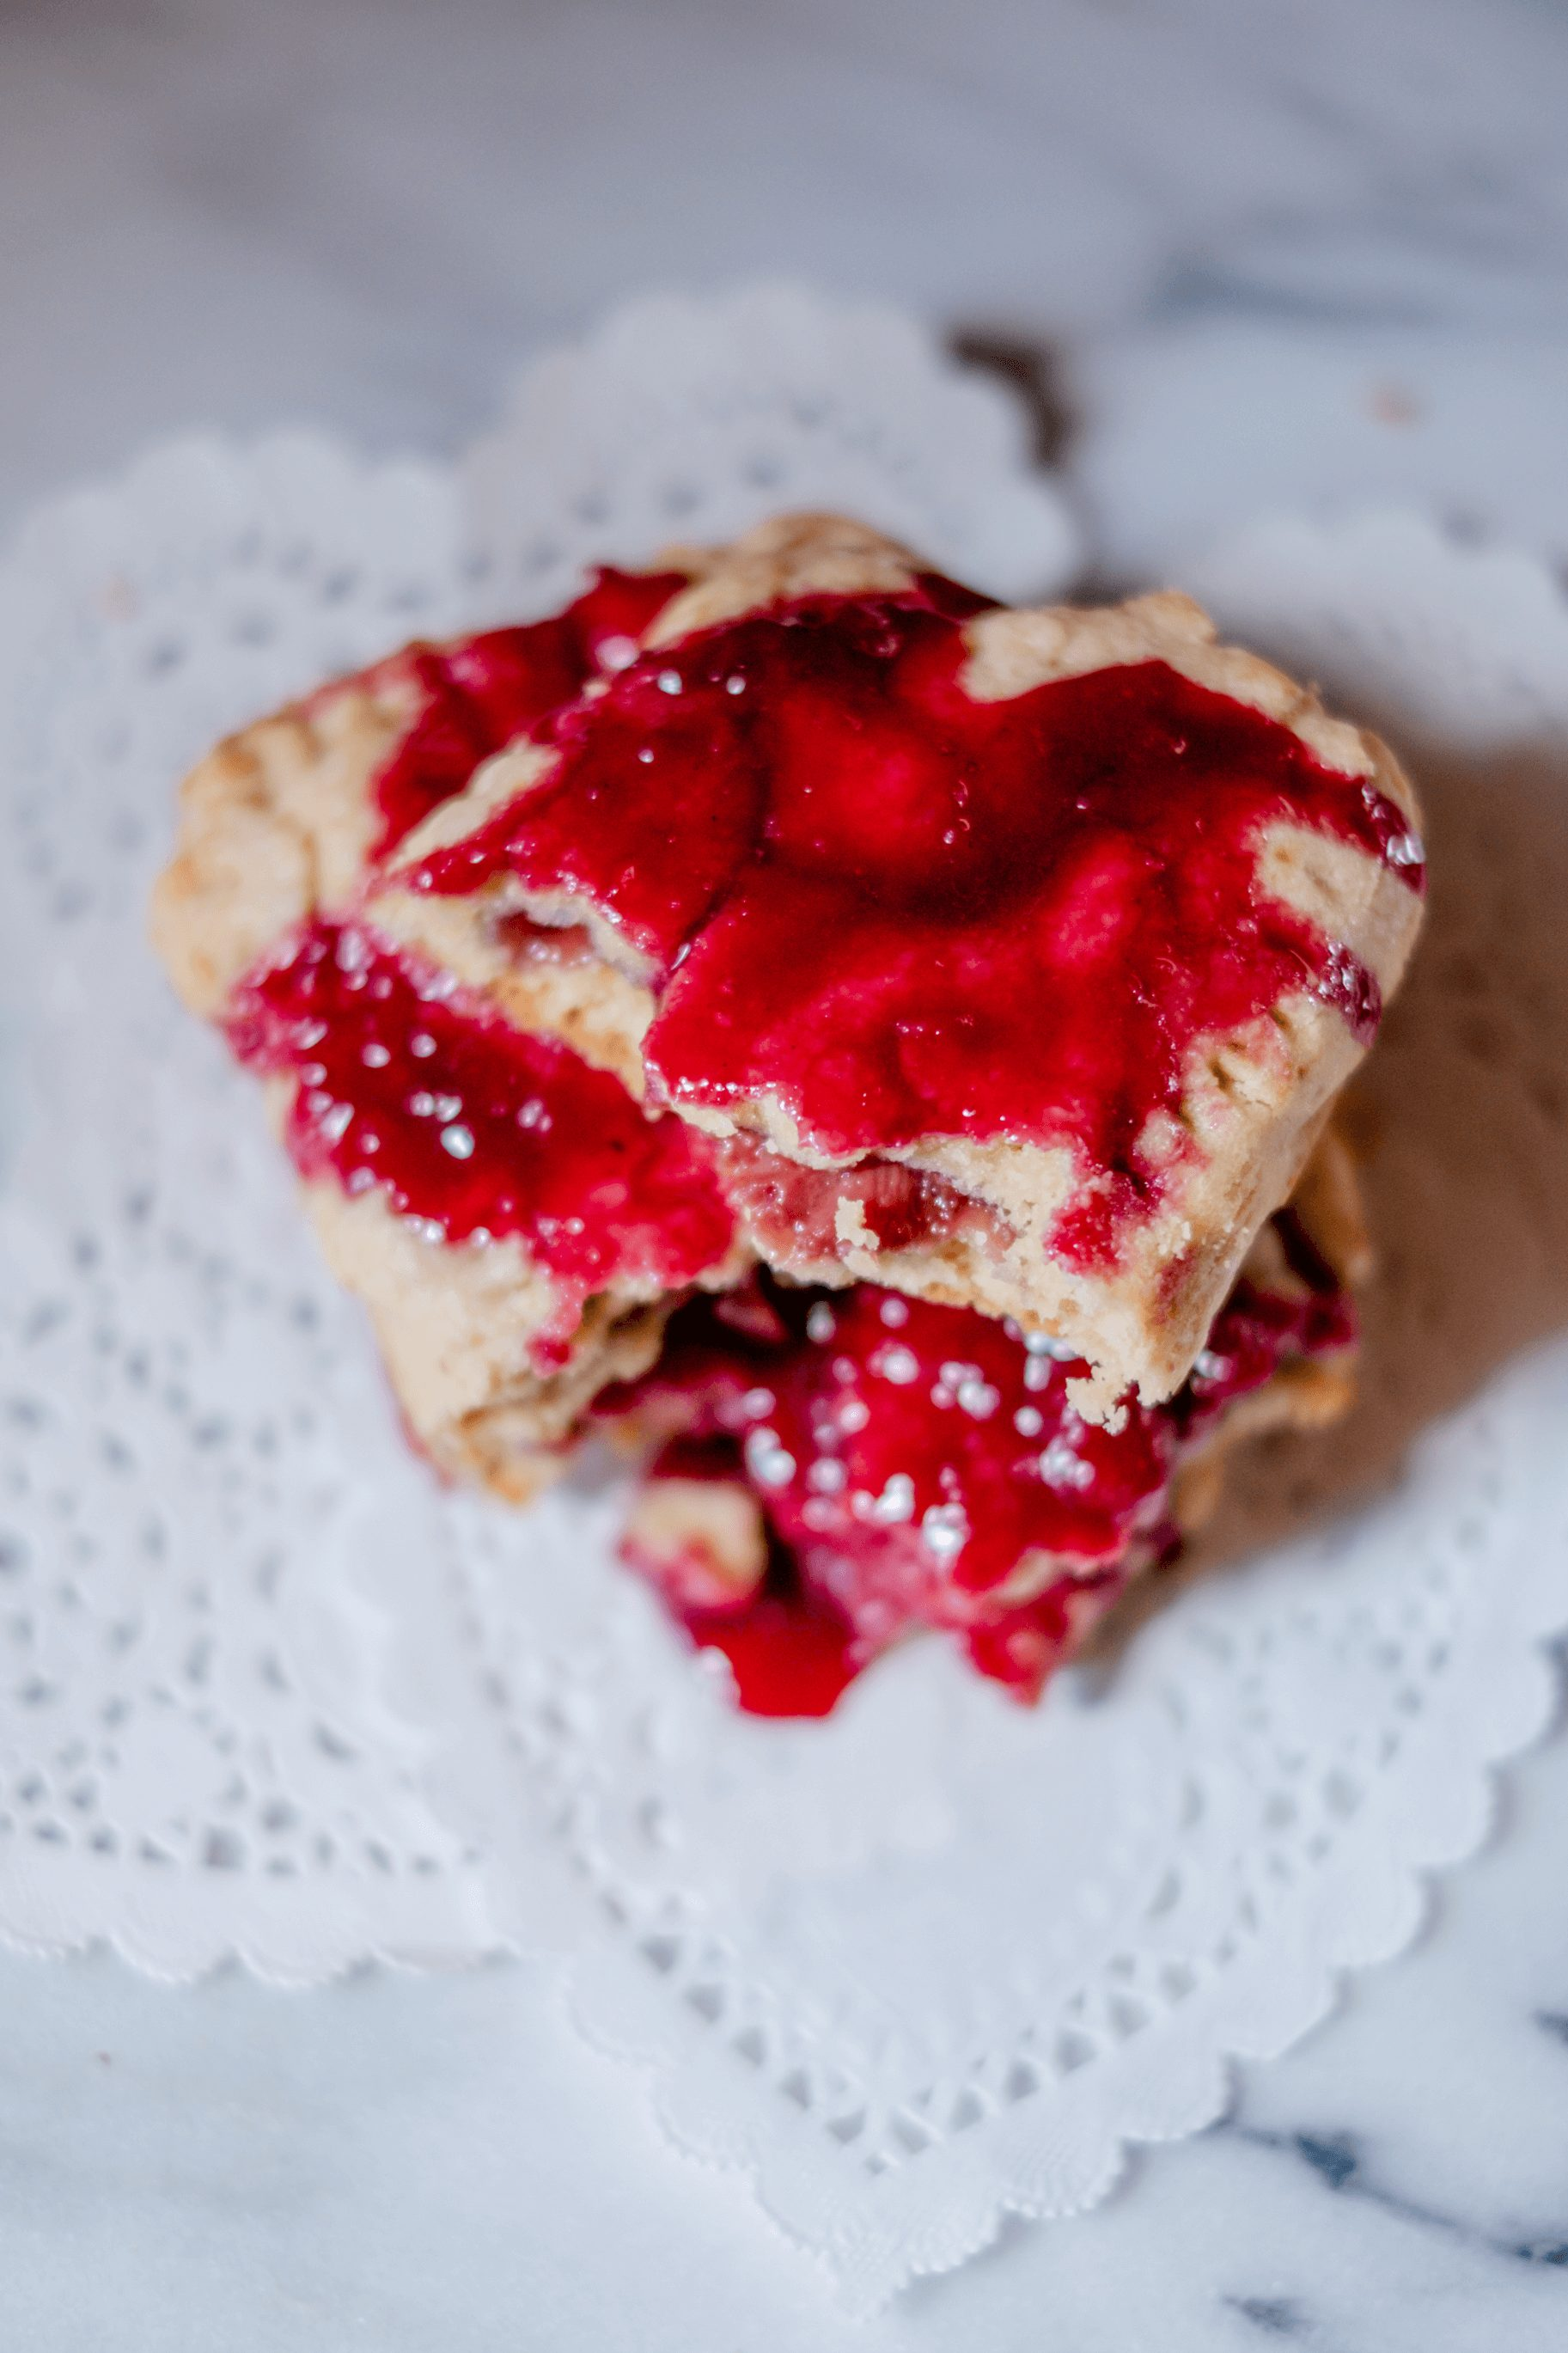 Strawberry Paleo Pop Tarts #whatsavvysaid #glutenfree #dairyfree #refinedsugarfree